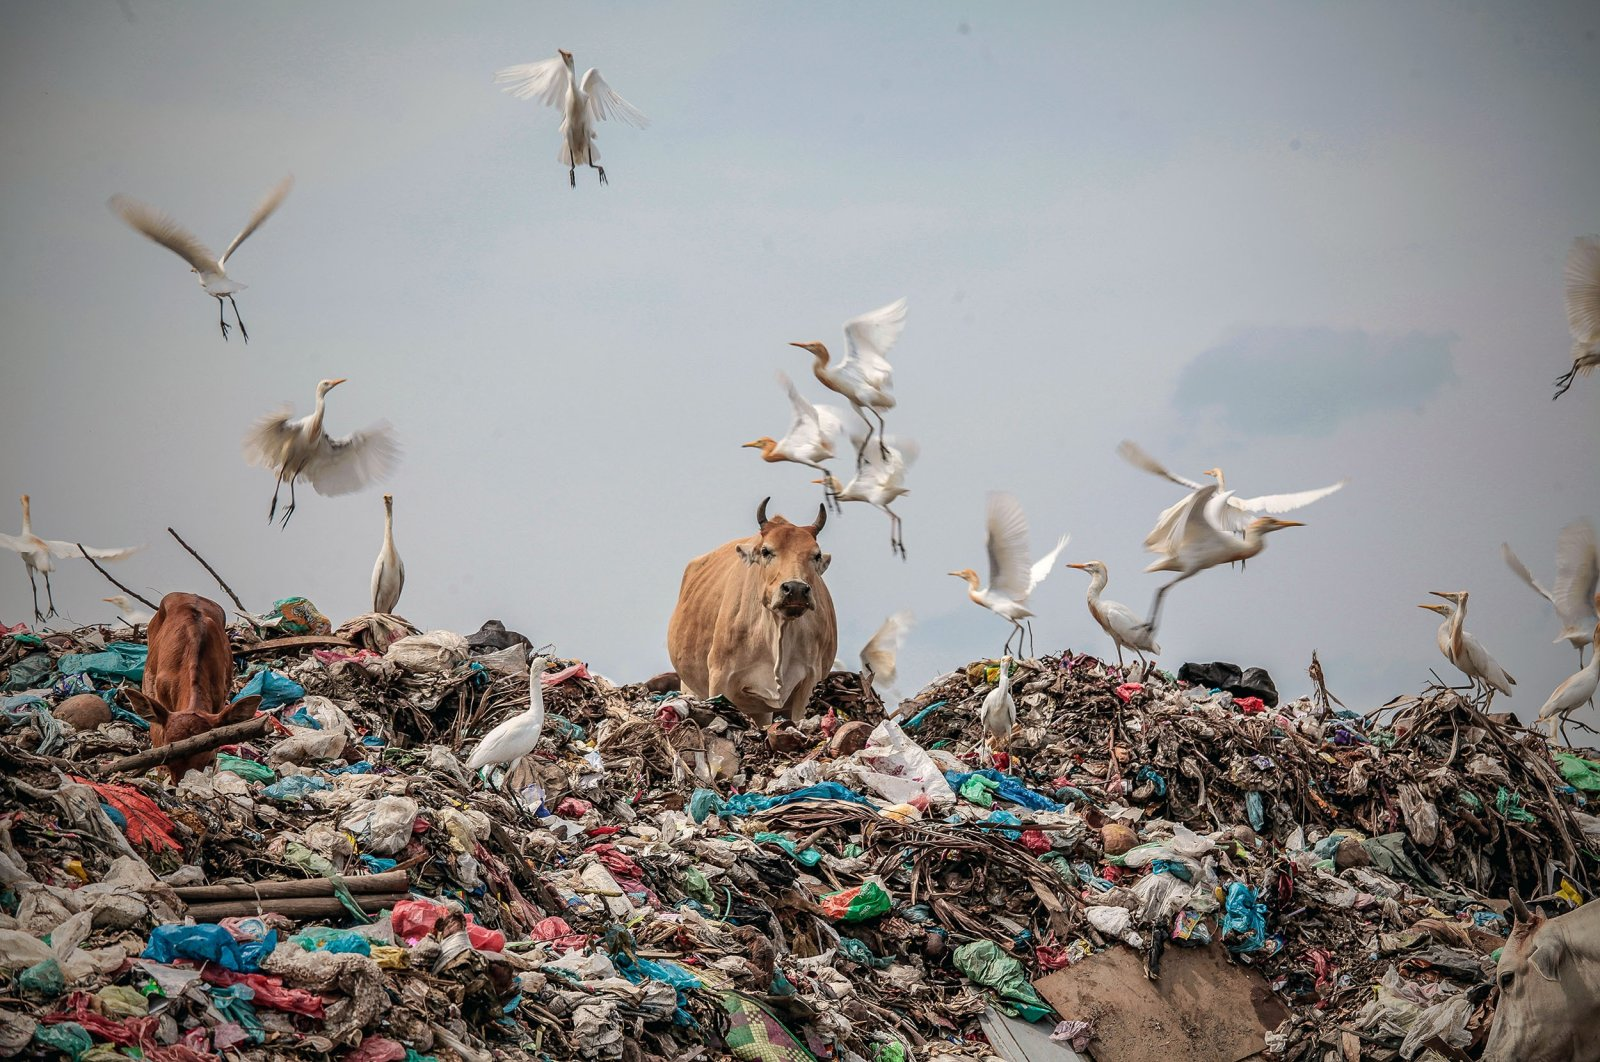 Cows play in a pile of rubbish at a landfill in Lhokseumawe, Aceh Province, Indonesia, Feb. 5, 2020. (Barcroft Media via Getty Images)